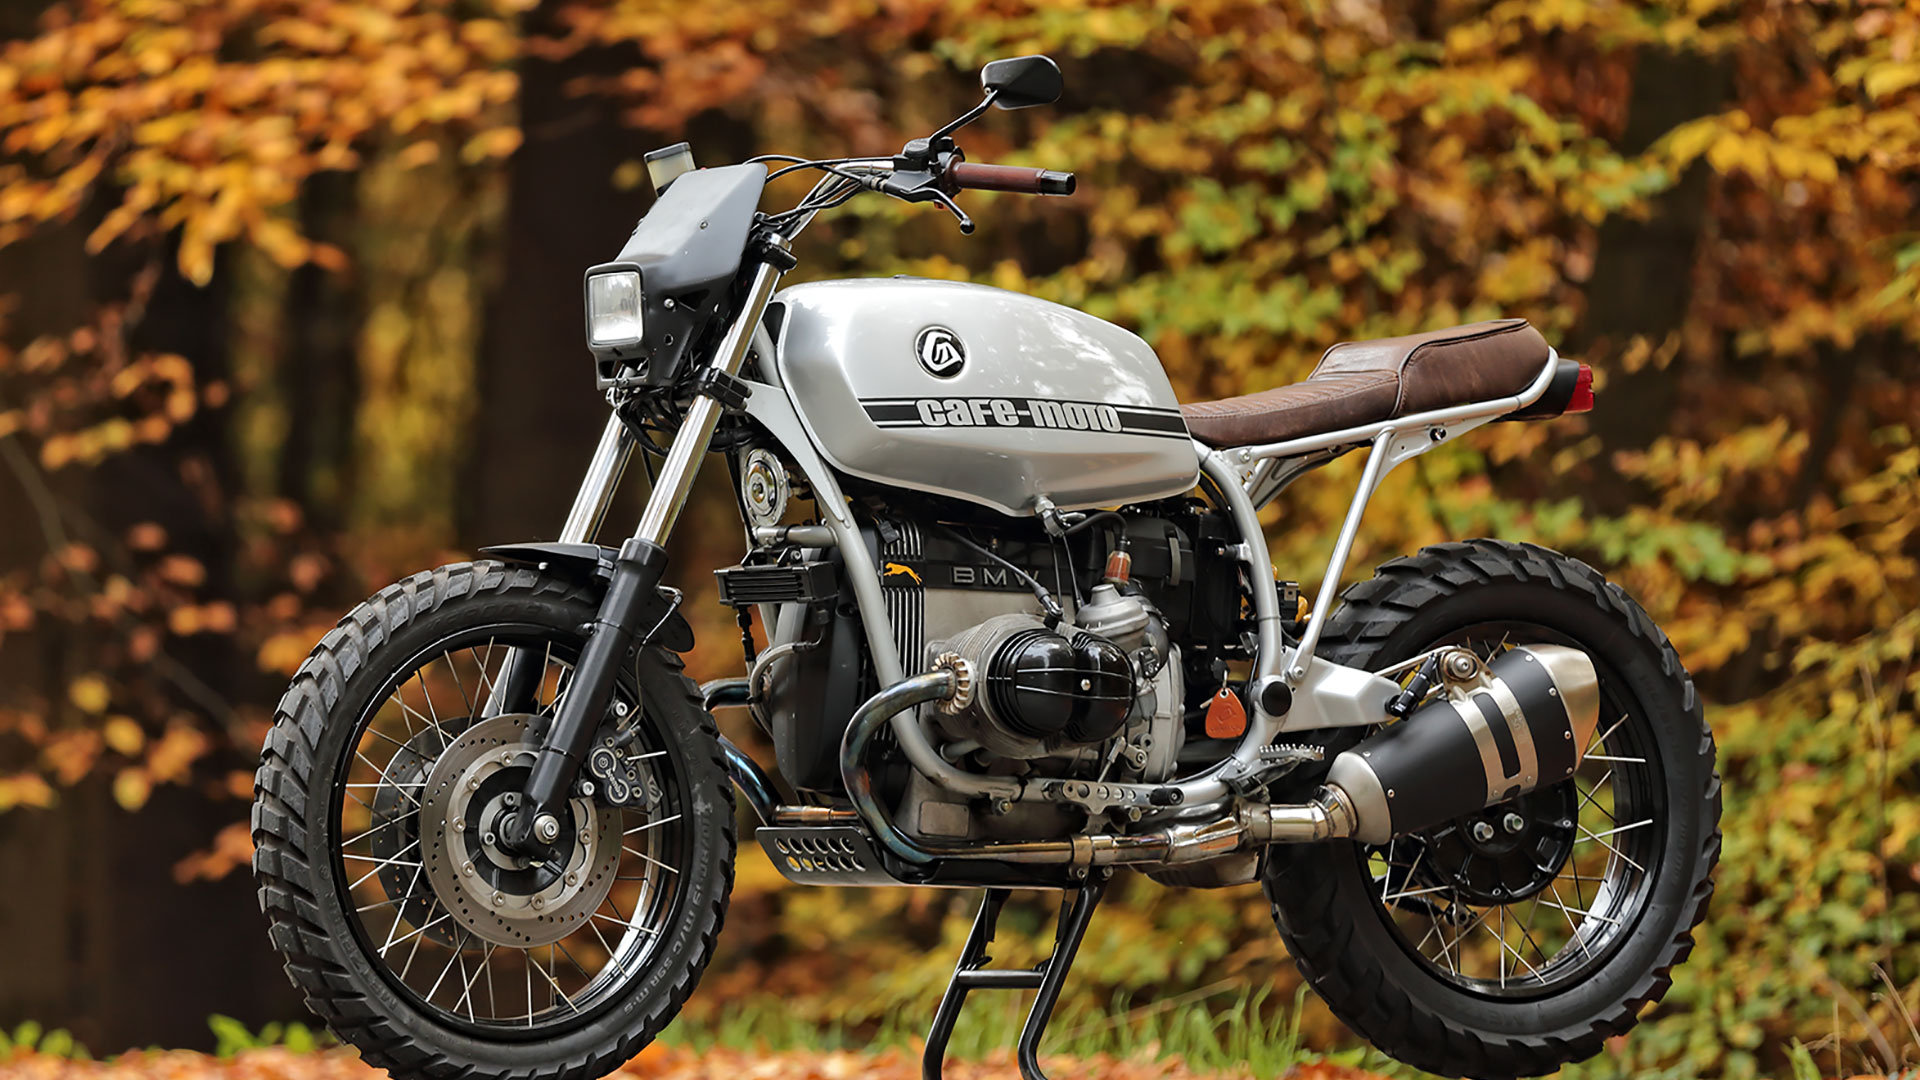 BMW R100 R Cafemoto 004 Hunter Dirttrack Scrambler Enduro Custom